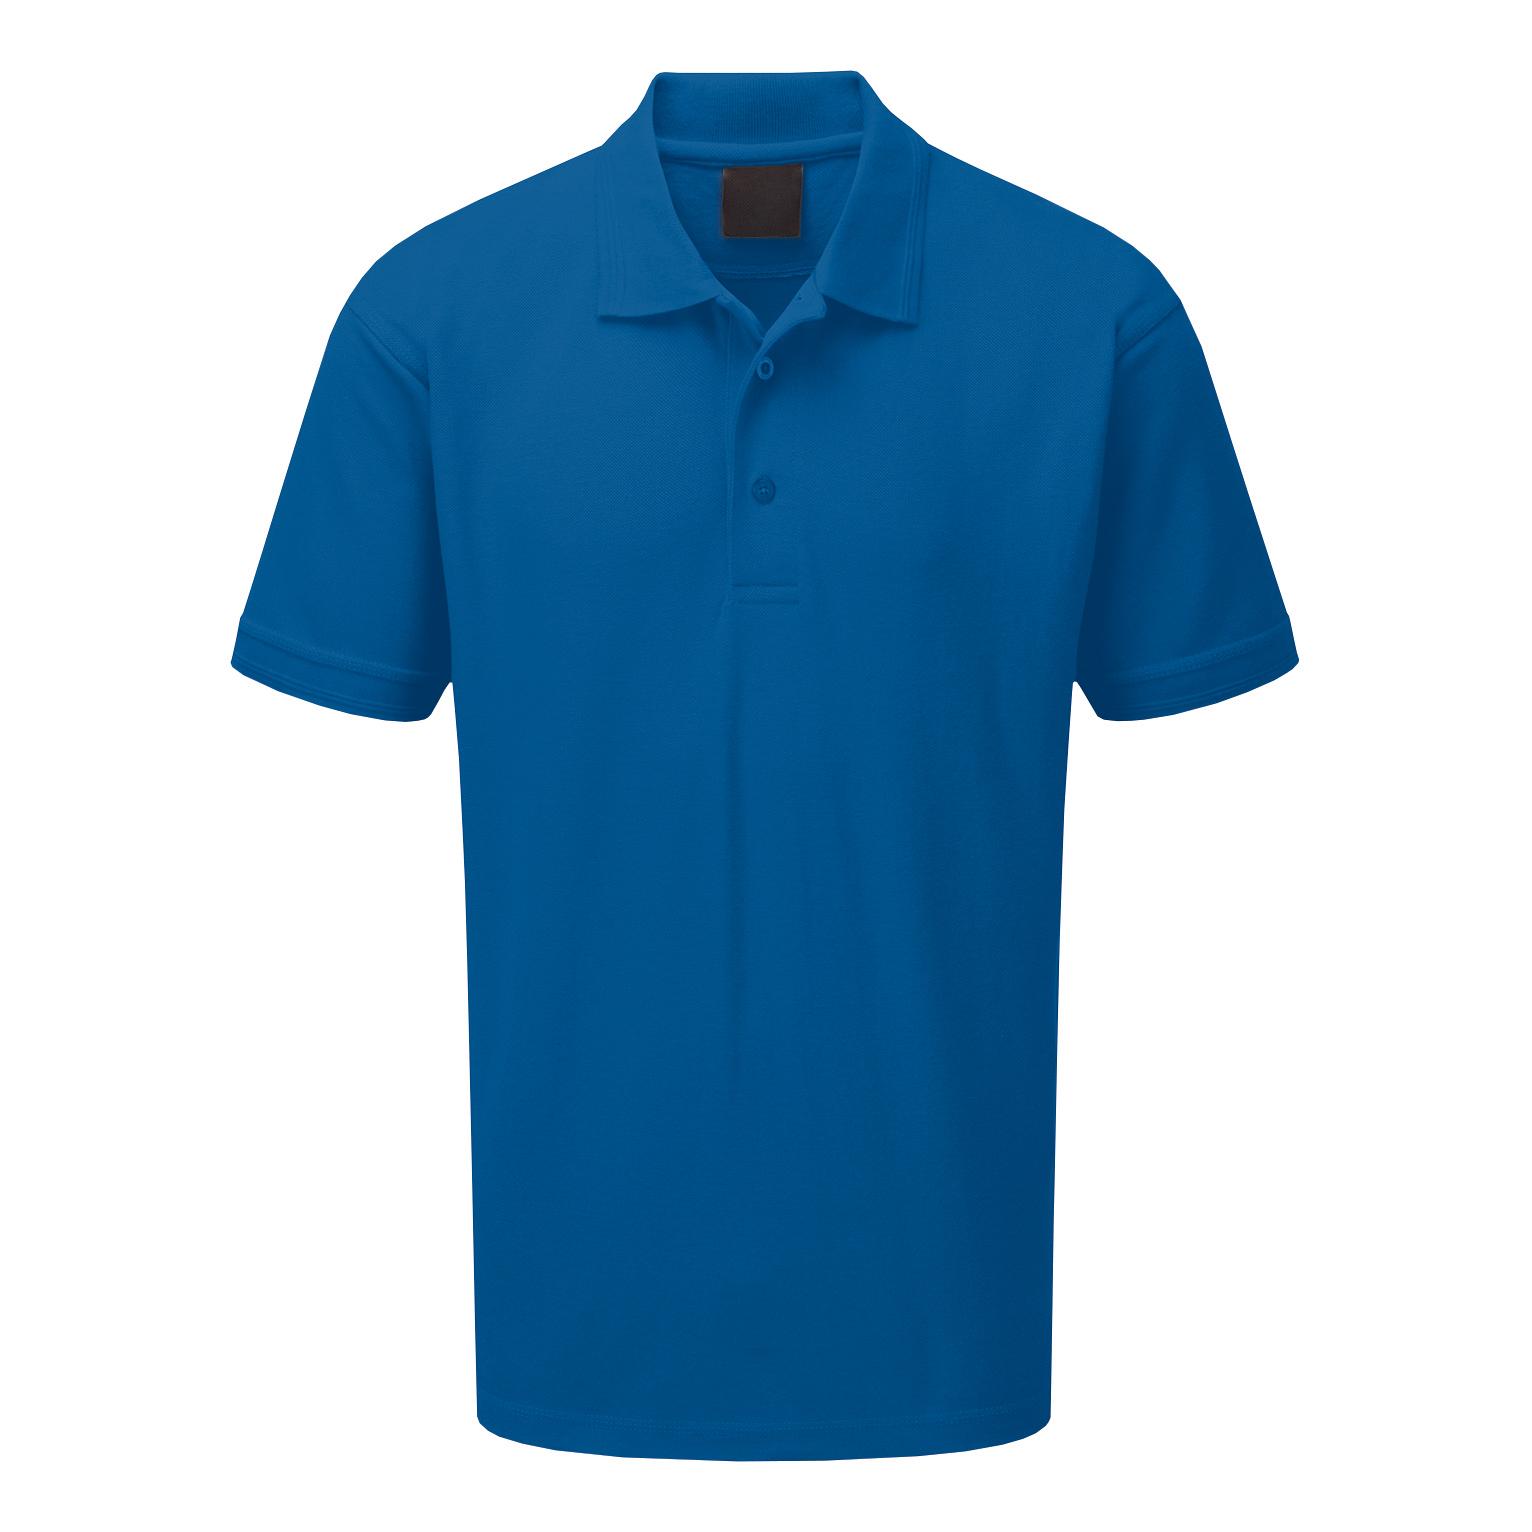 Business Polo Premium Triple Stitched Size 3XL Royal Blue